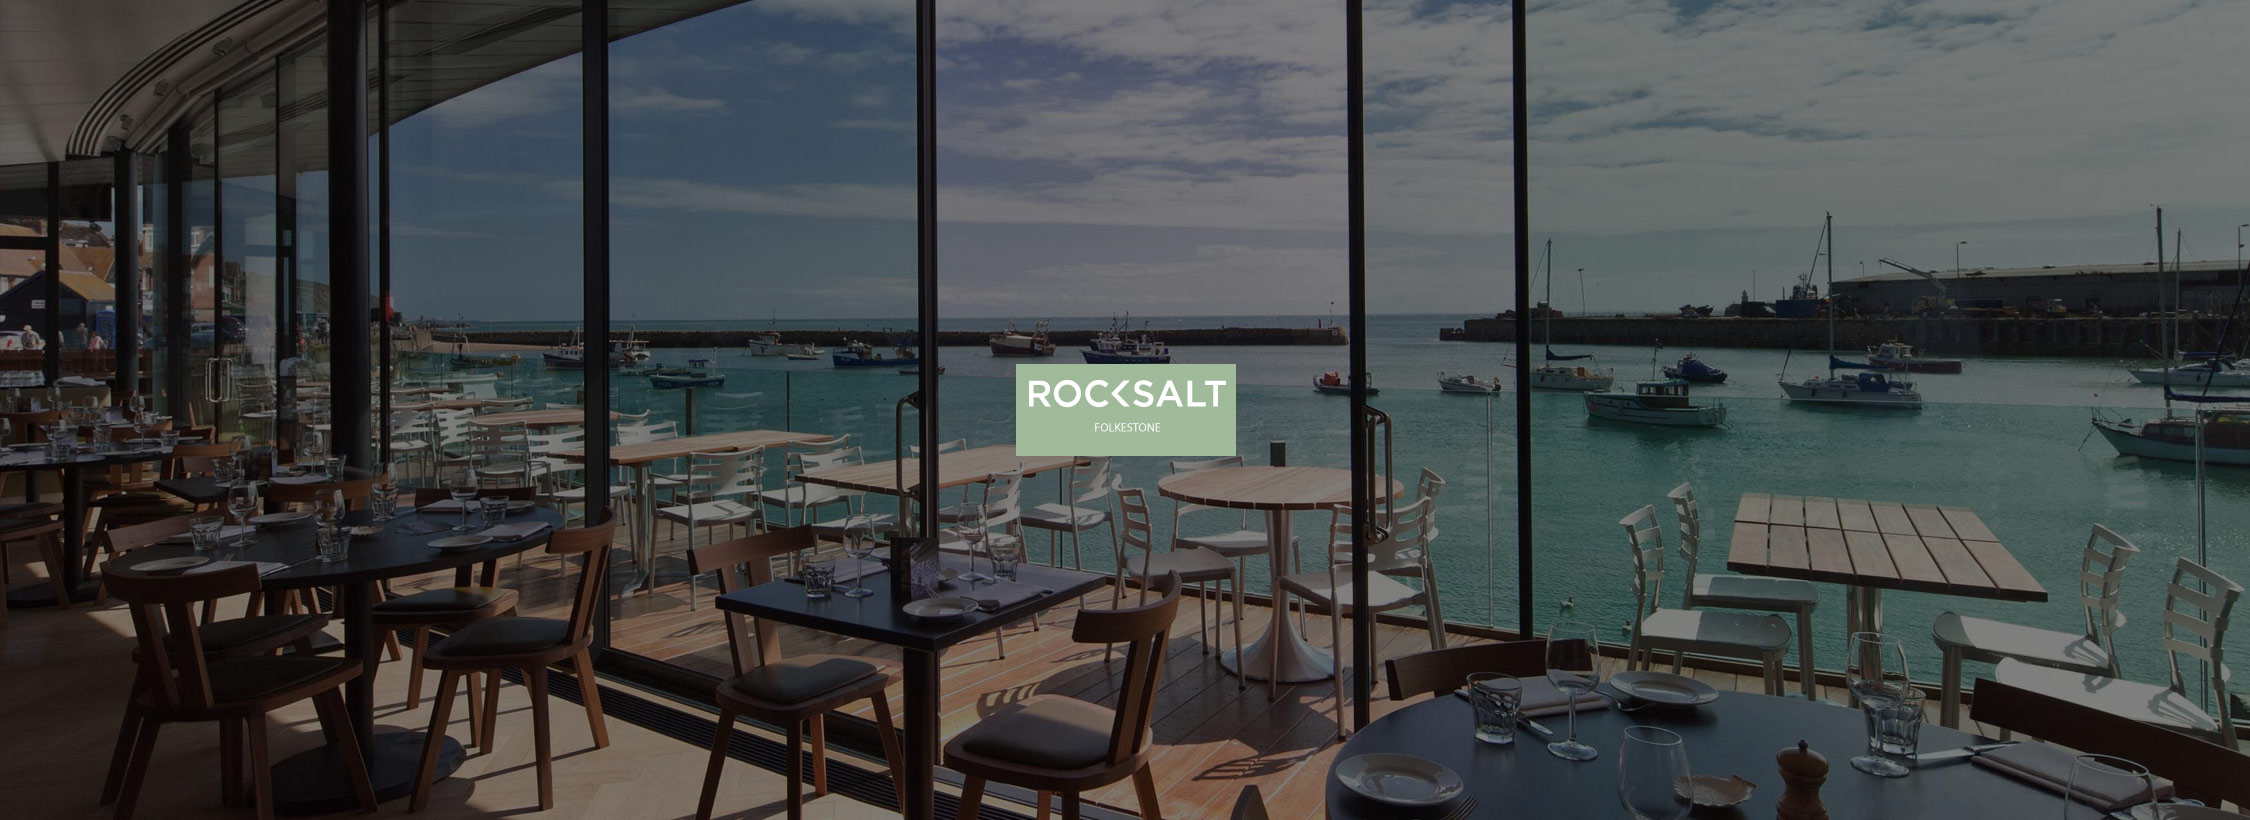 restaurants-supplied-rocksalt-folkstone-bg